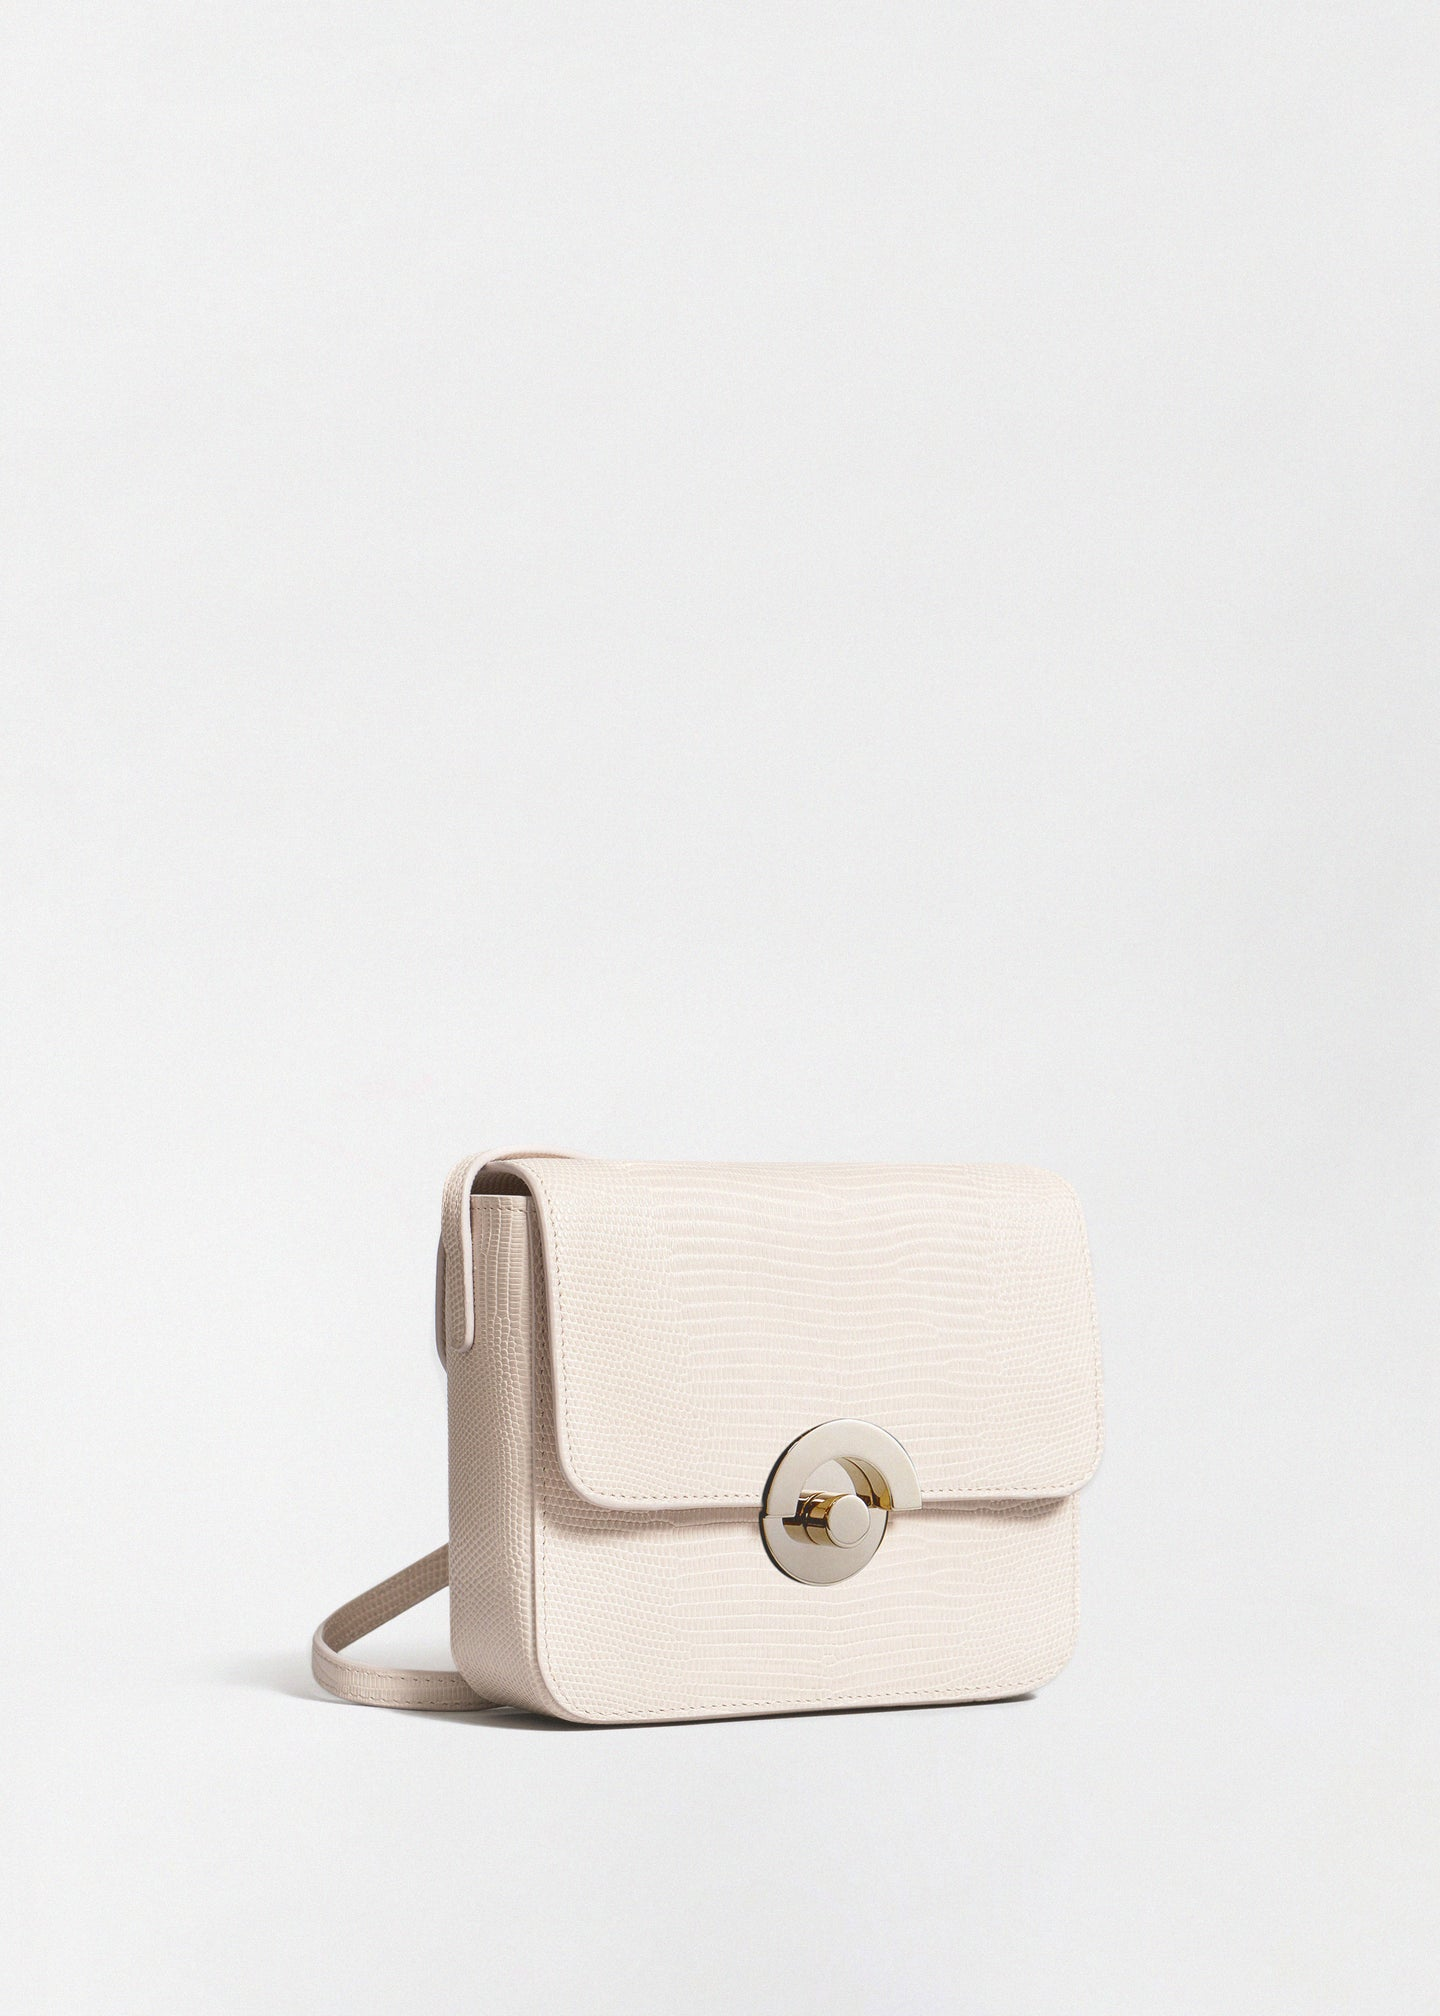 CO - Small Box Bag in Embossed Leather - Sand